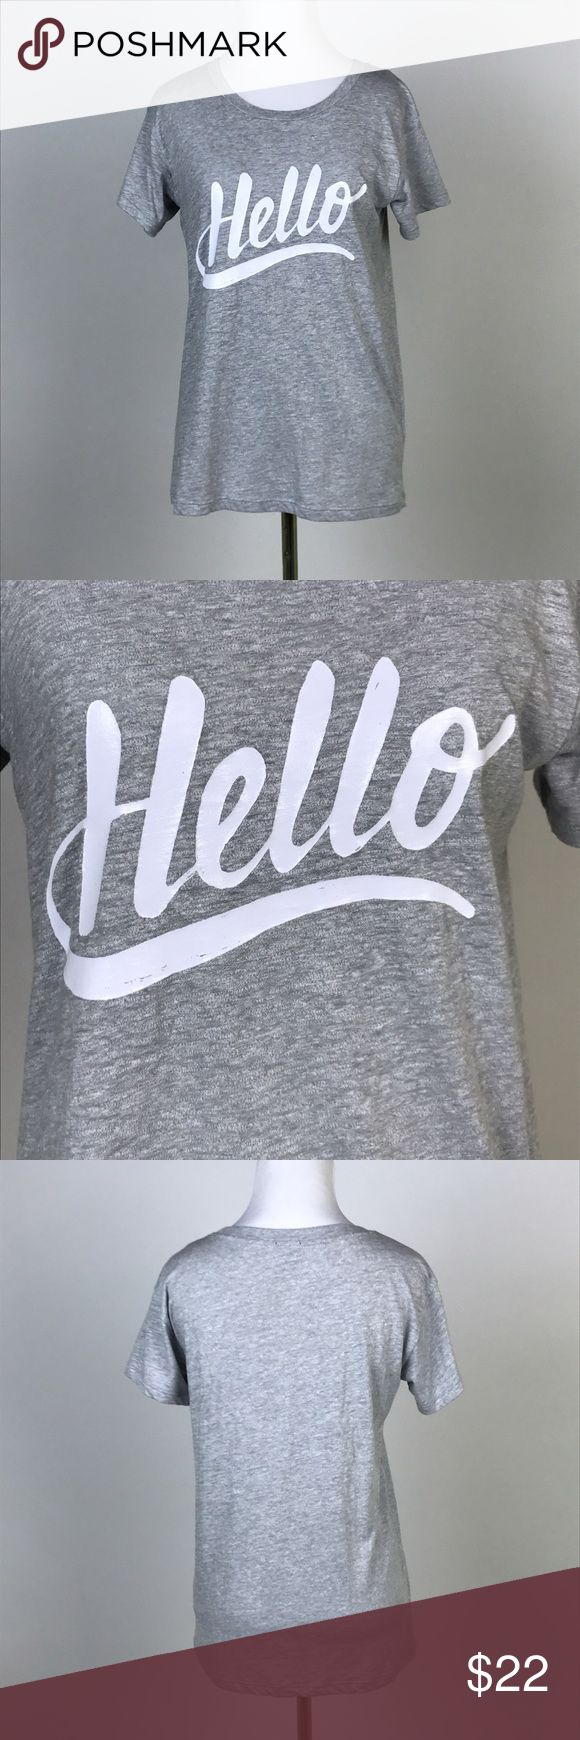 """[J Crew] Hello Graphic Tee Shirt Gray Casual Chic Say hello to your new favorite graphic tee! Super soft. Crew neck. Slightly loose fit.  🔹Pit to Pit: 17"""" 🔹Length: 24"""" 🔹Condition: Excellent pre-owned condition.  *V57 J. Crew Tops Tees - Short Sleeve"""